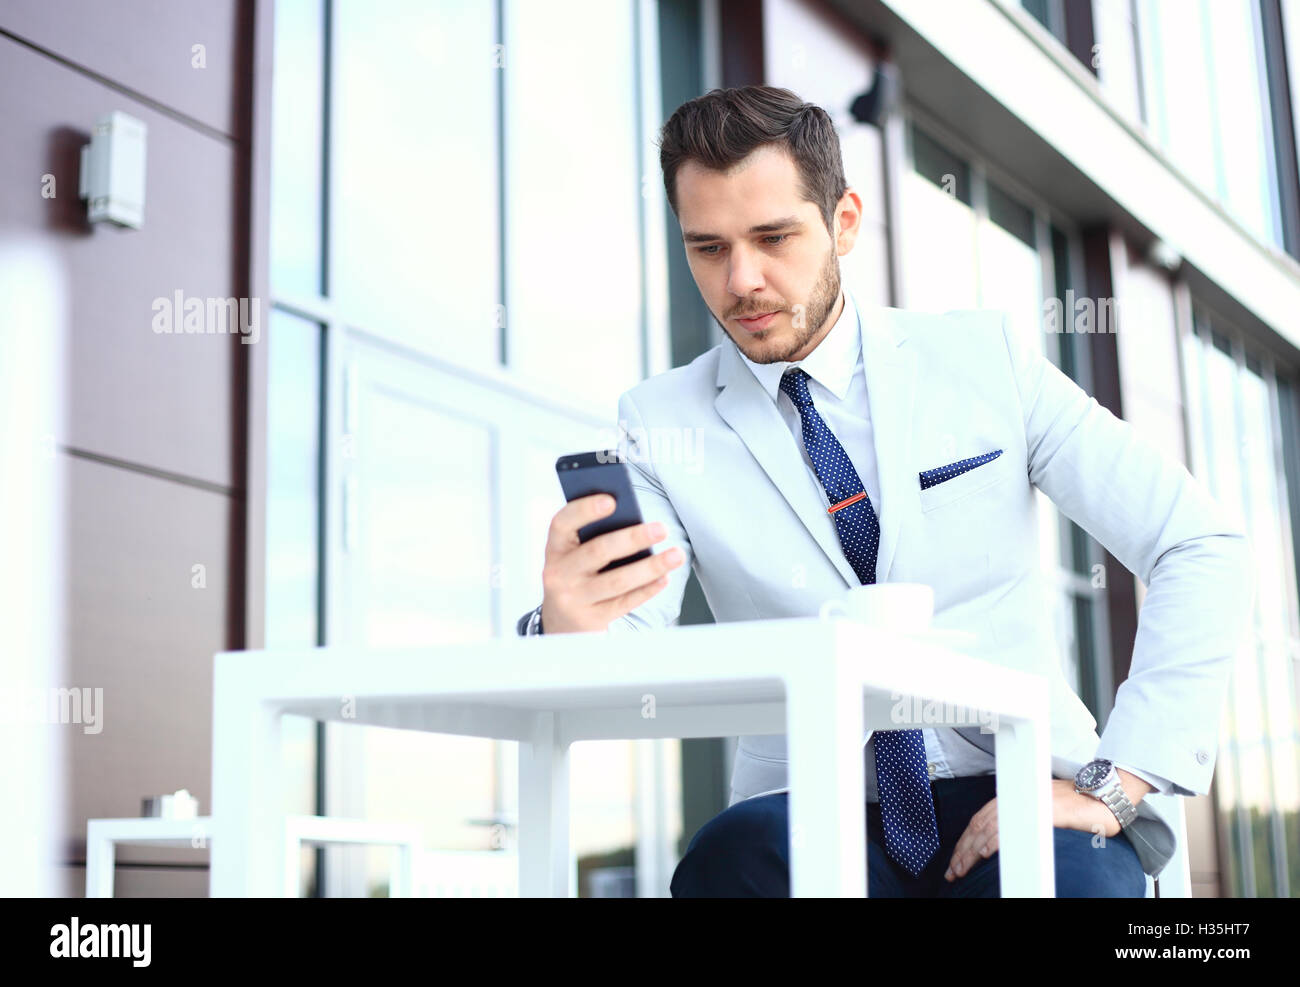 Man on smartphone - young business man talking on smart phone. Casual urban  professional businessman